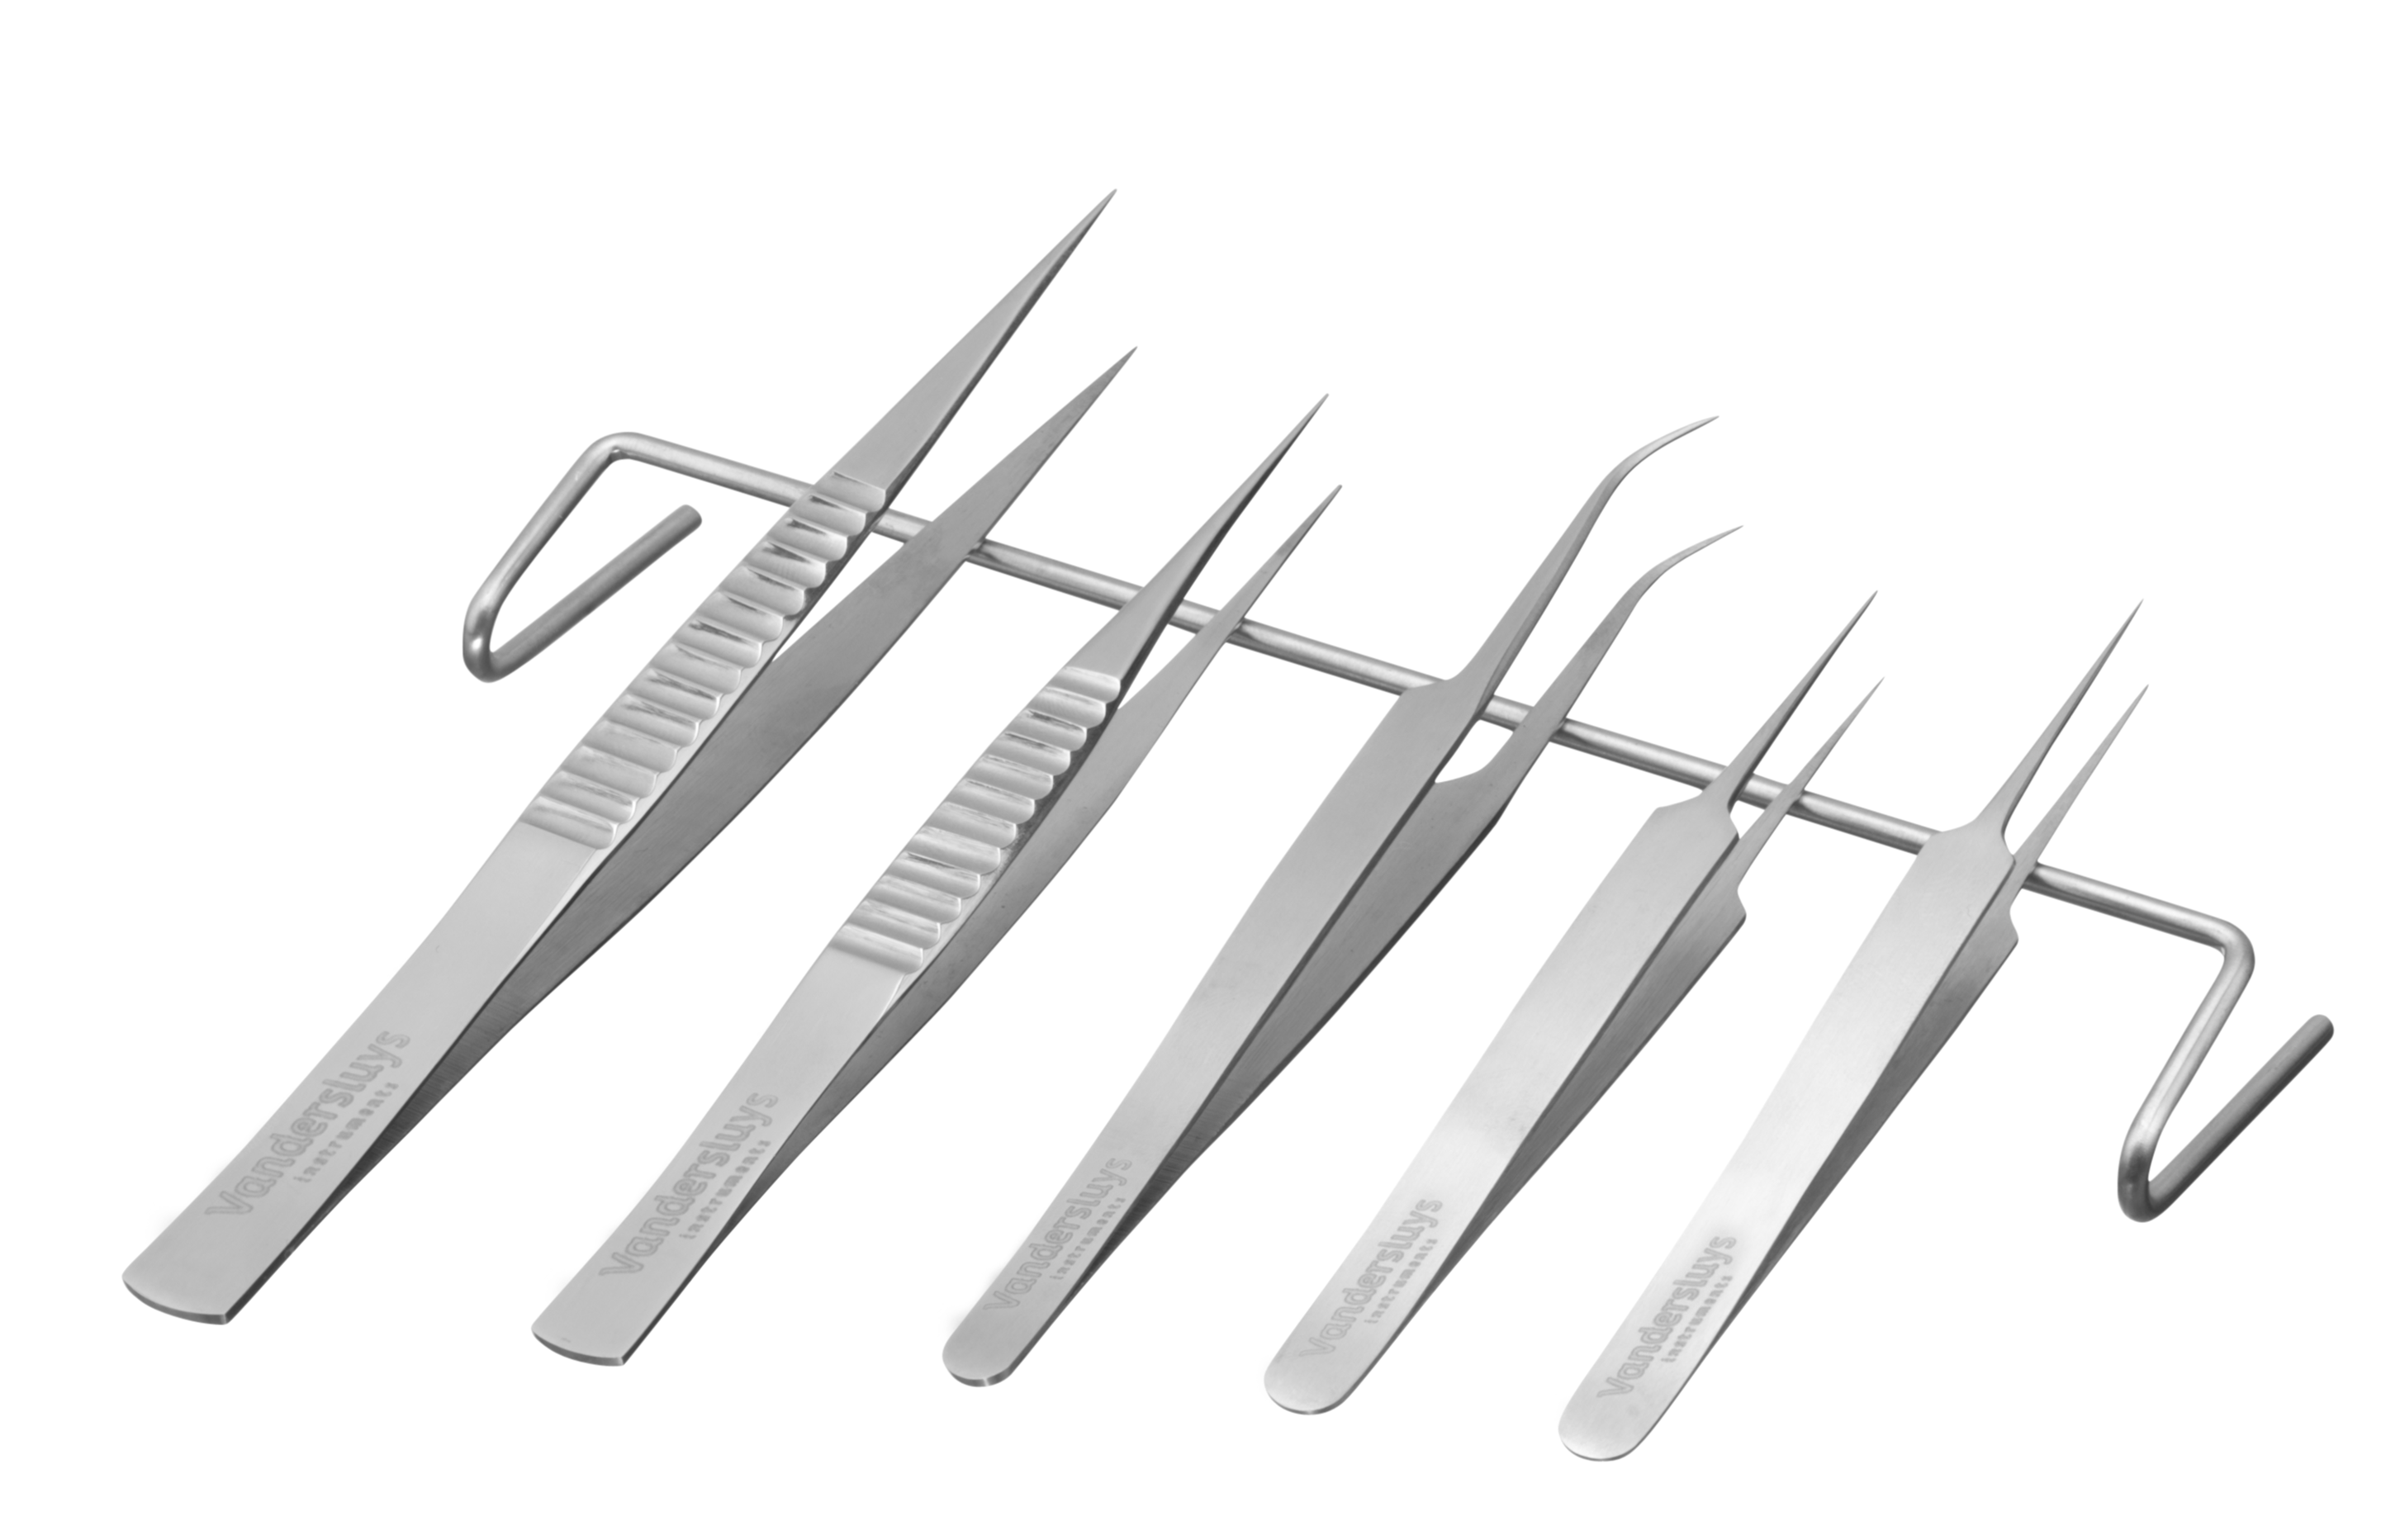 Pointy tip forceps for PTC